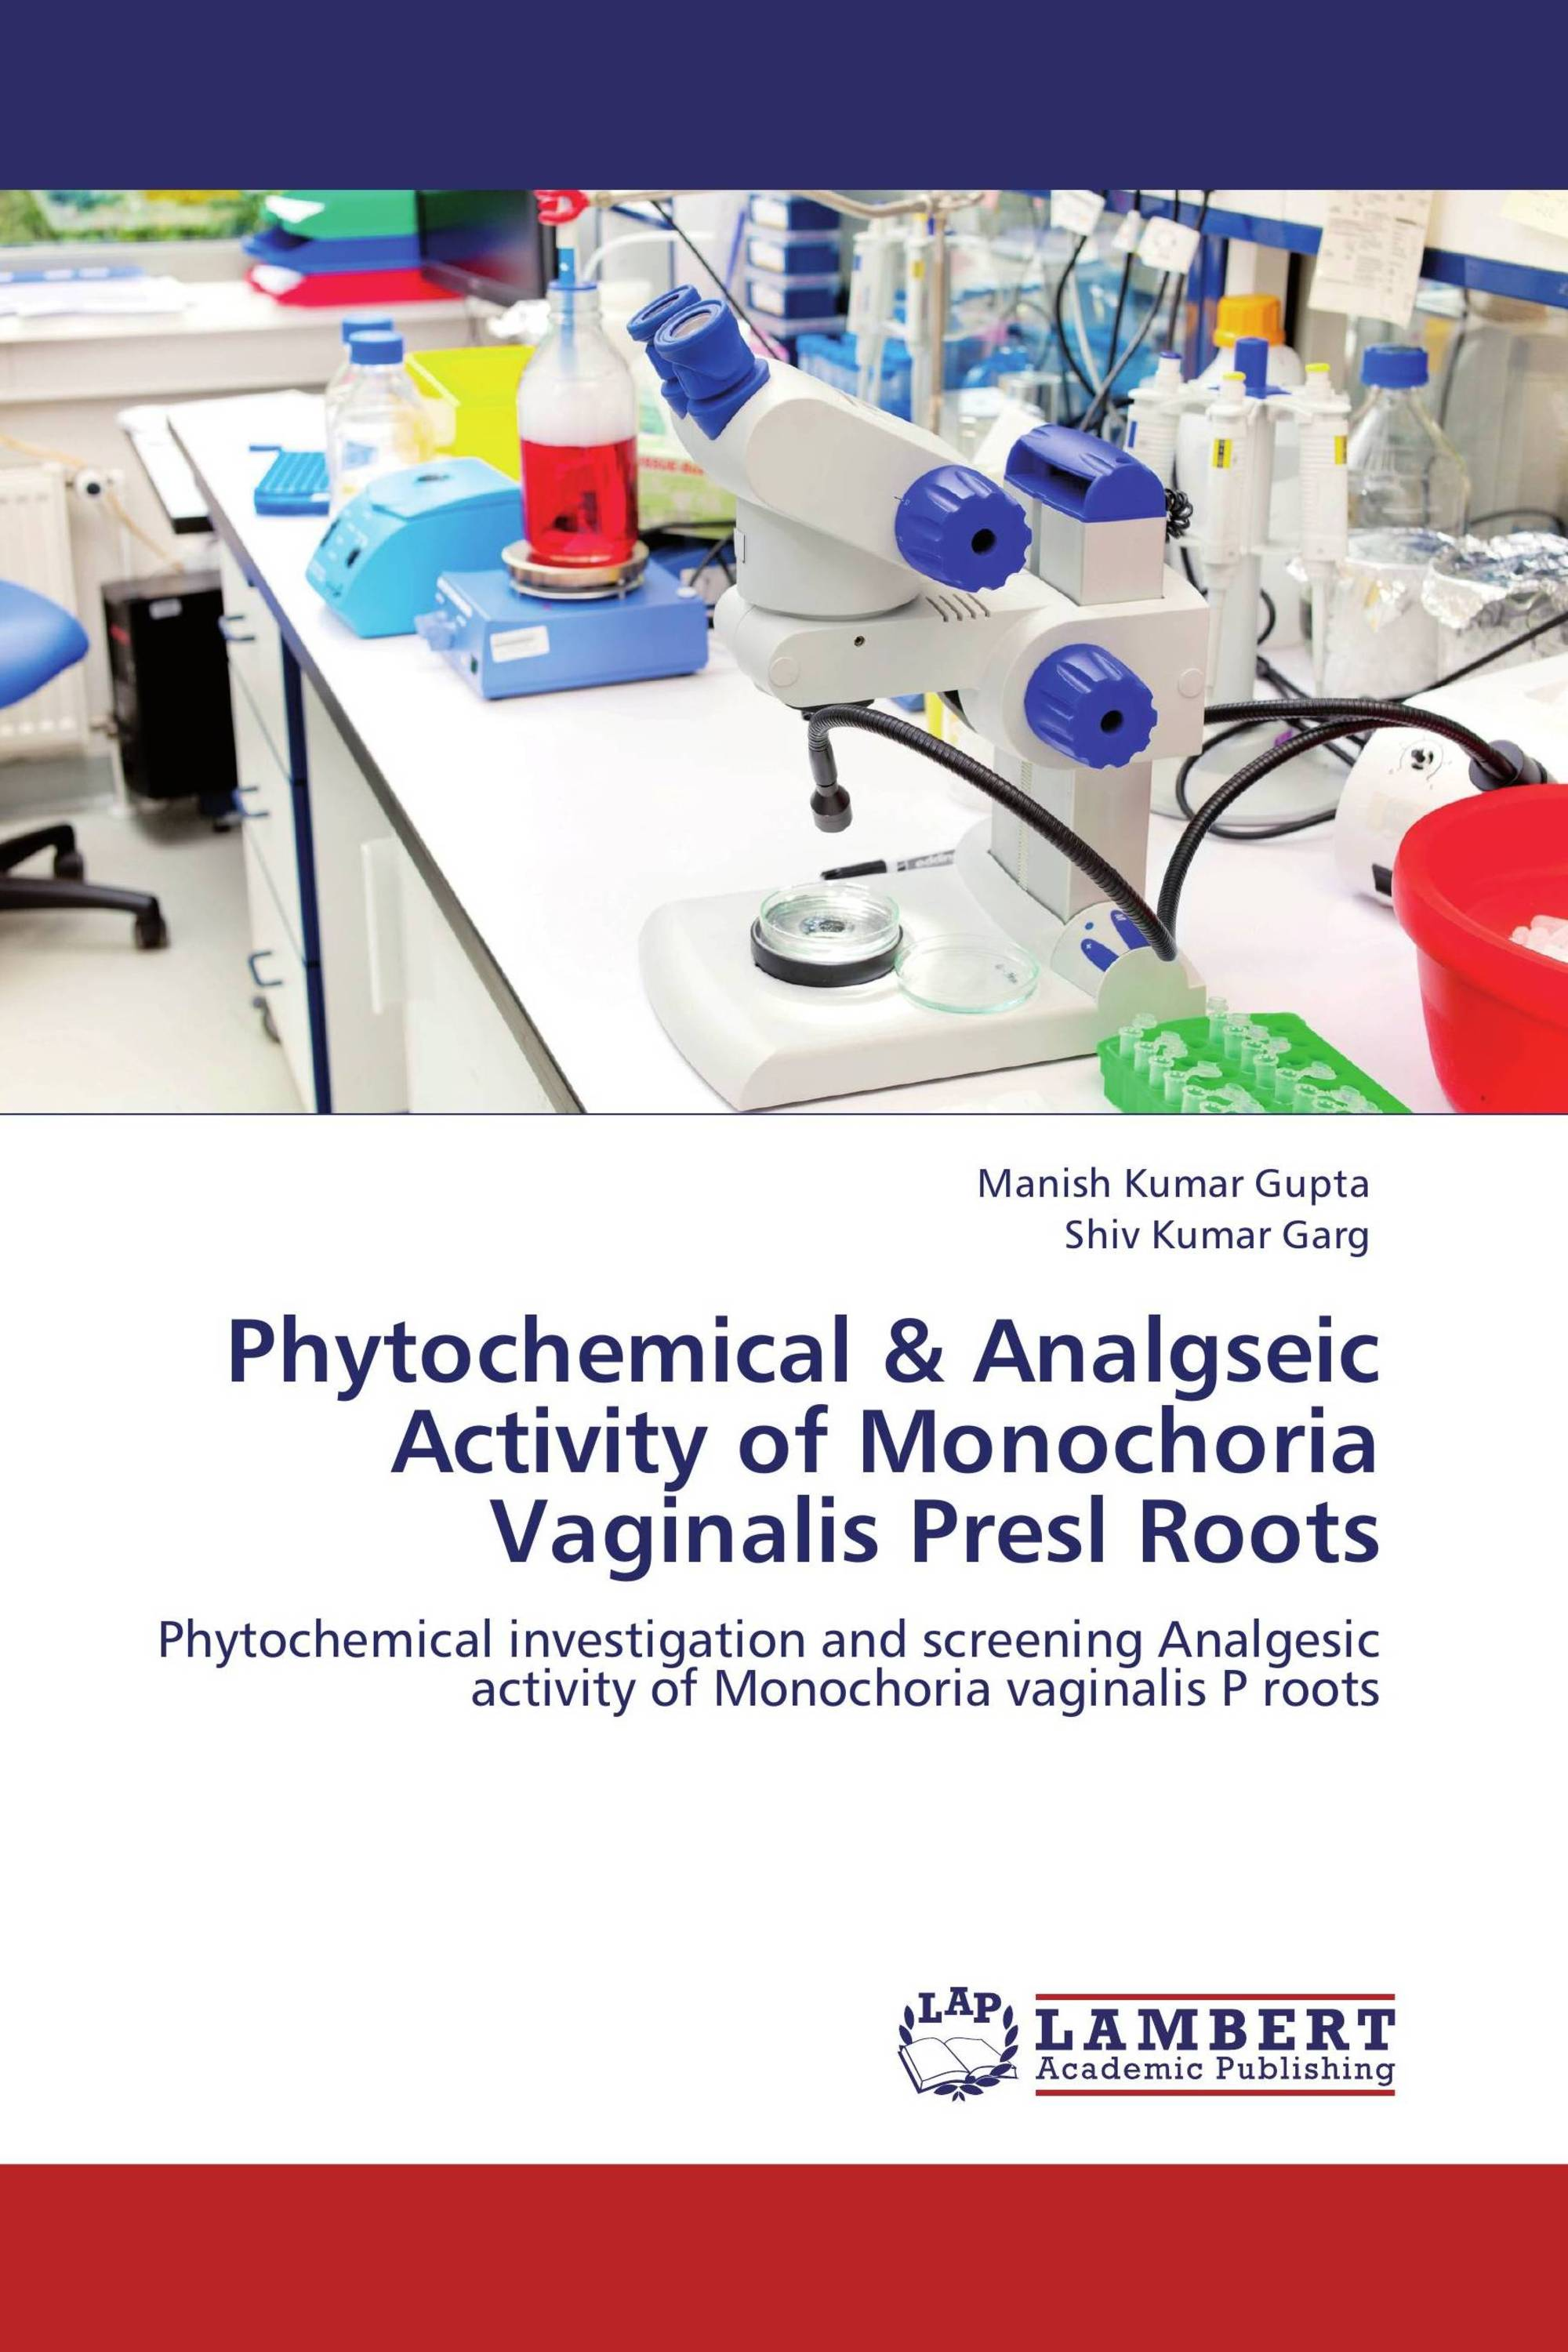 Phytochemical & Analgseic Activity of Monochoria Vaginalis Presl Roots